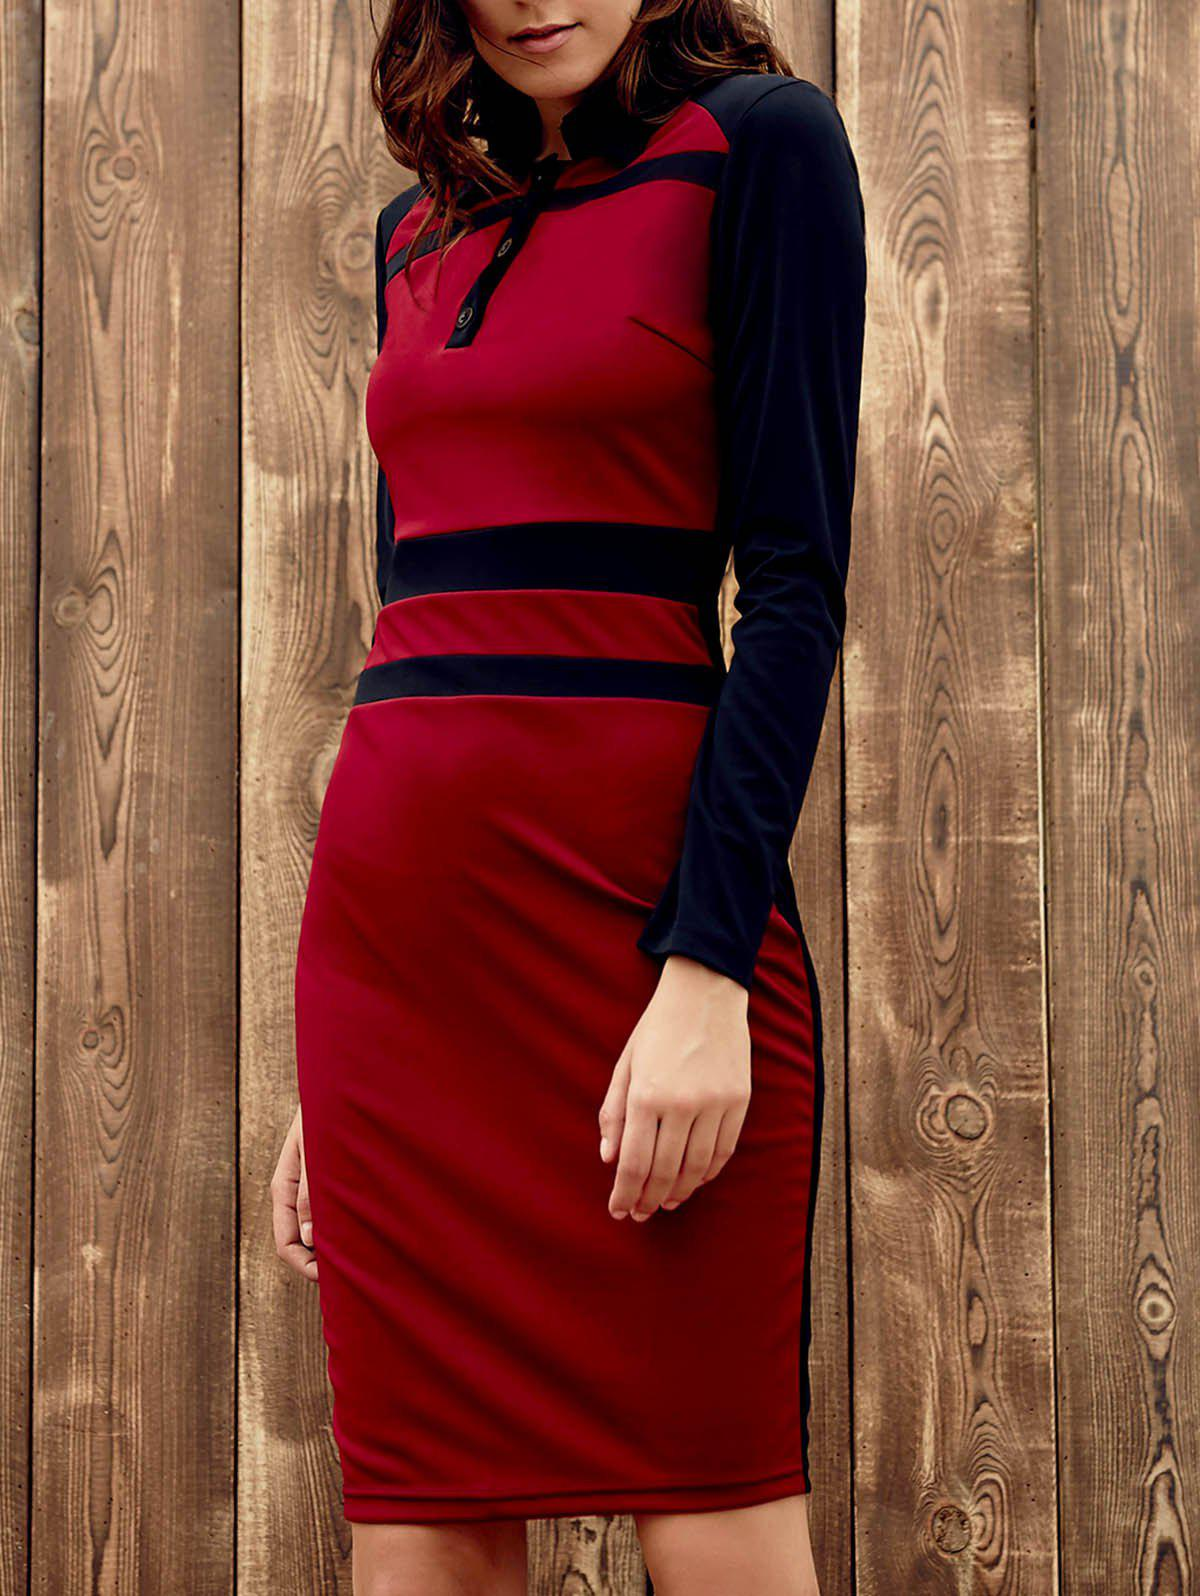 Chic Long Sleeve Turn-Down Collar Skinny Hit Color Women's Dress - WINE RED L